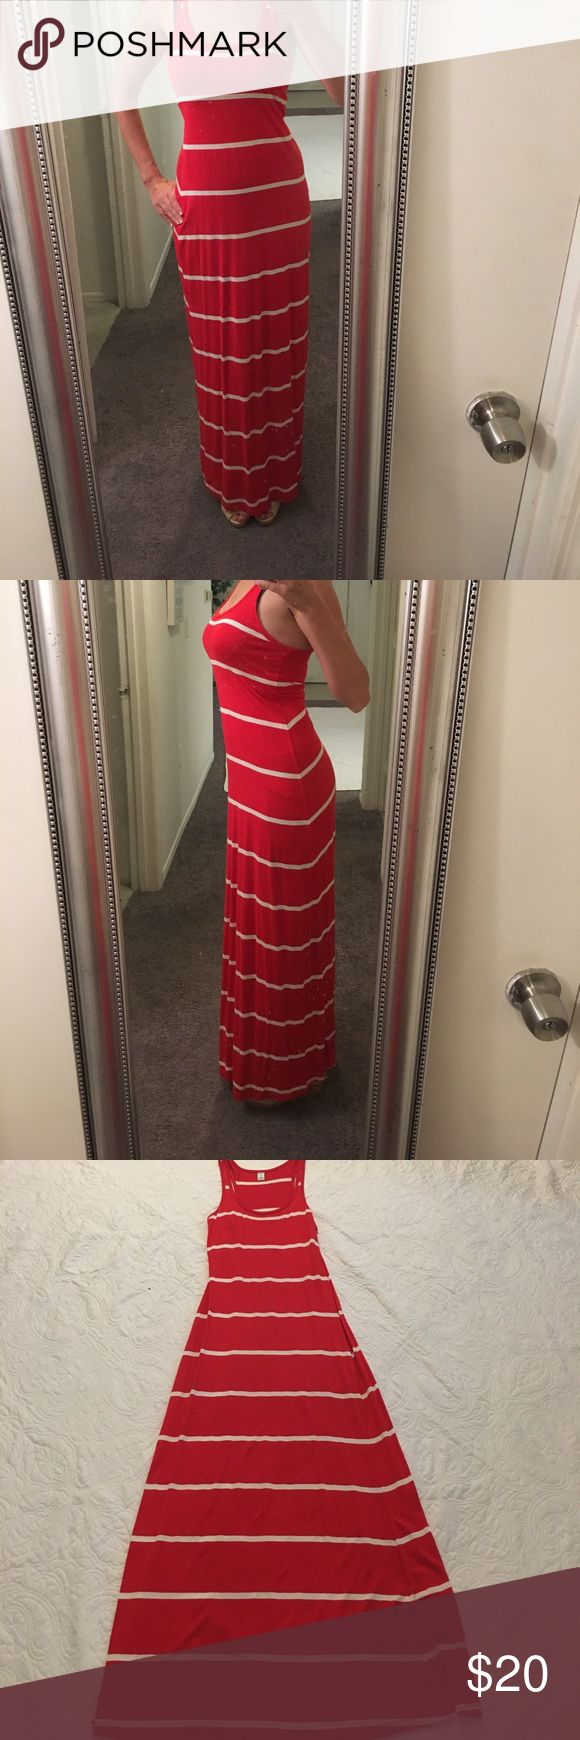 4th of July!! Old Navy Red and White Maxi Be ready for the Fourth of July in this red and white striped maxi dress from Old Navy. Offers Welcome! Ships next business day! Old Navy Dresses Maxi